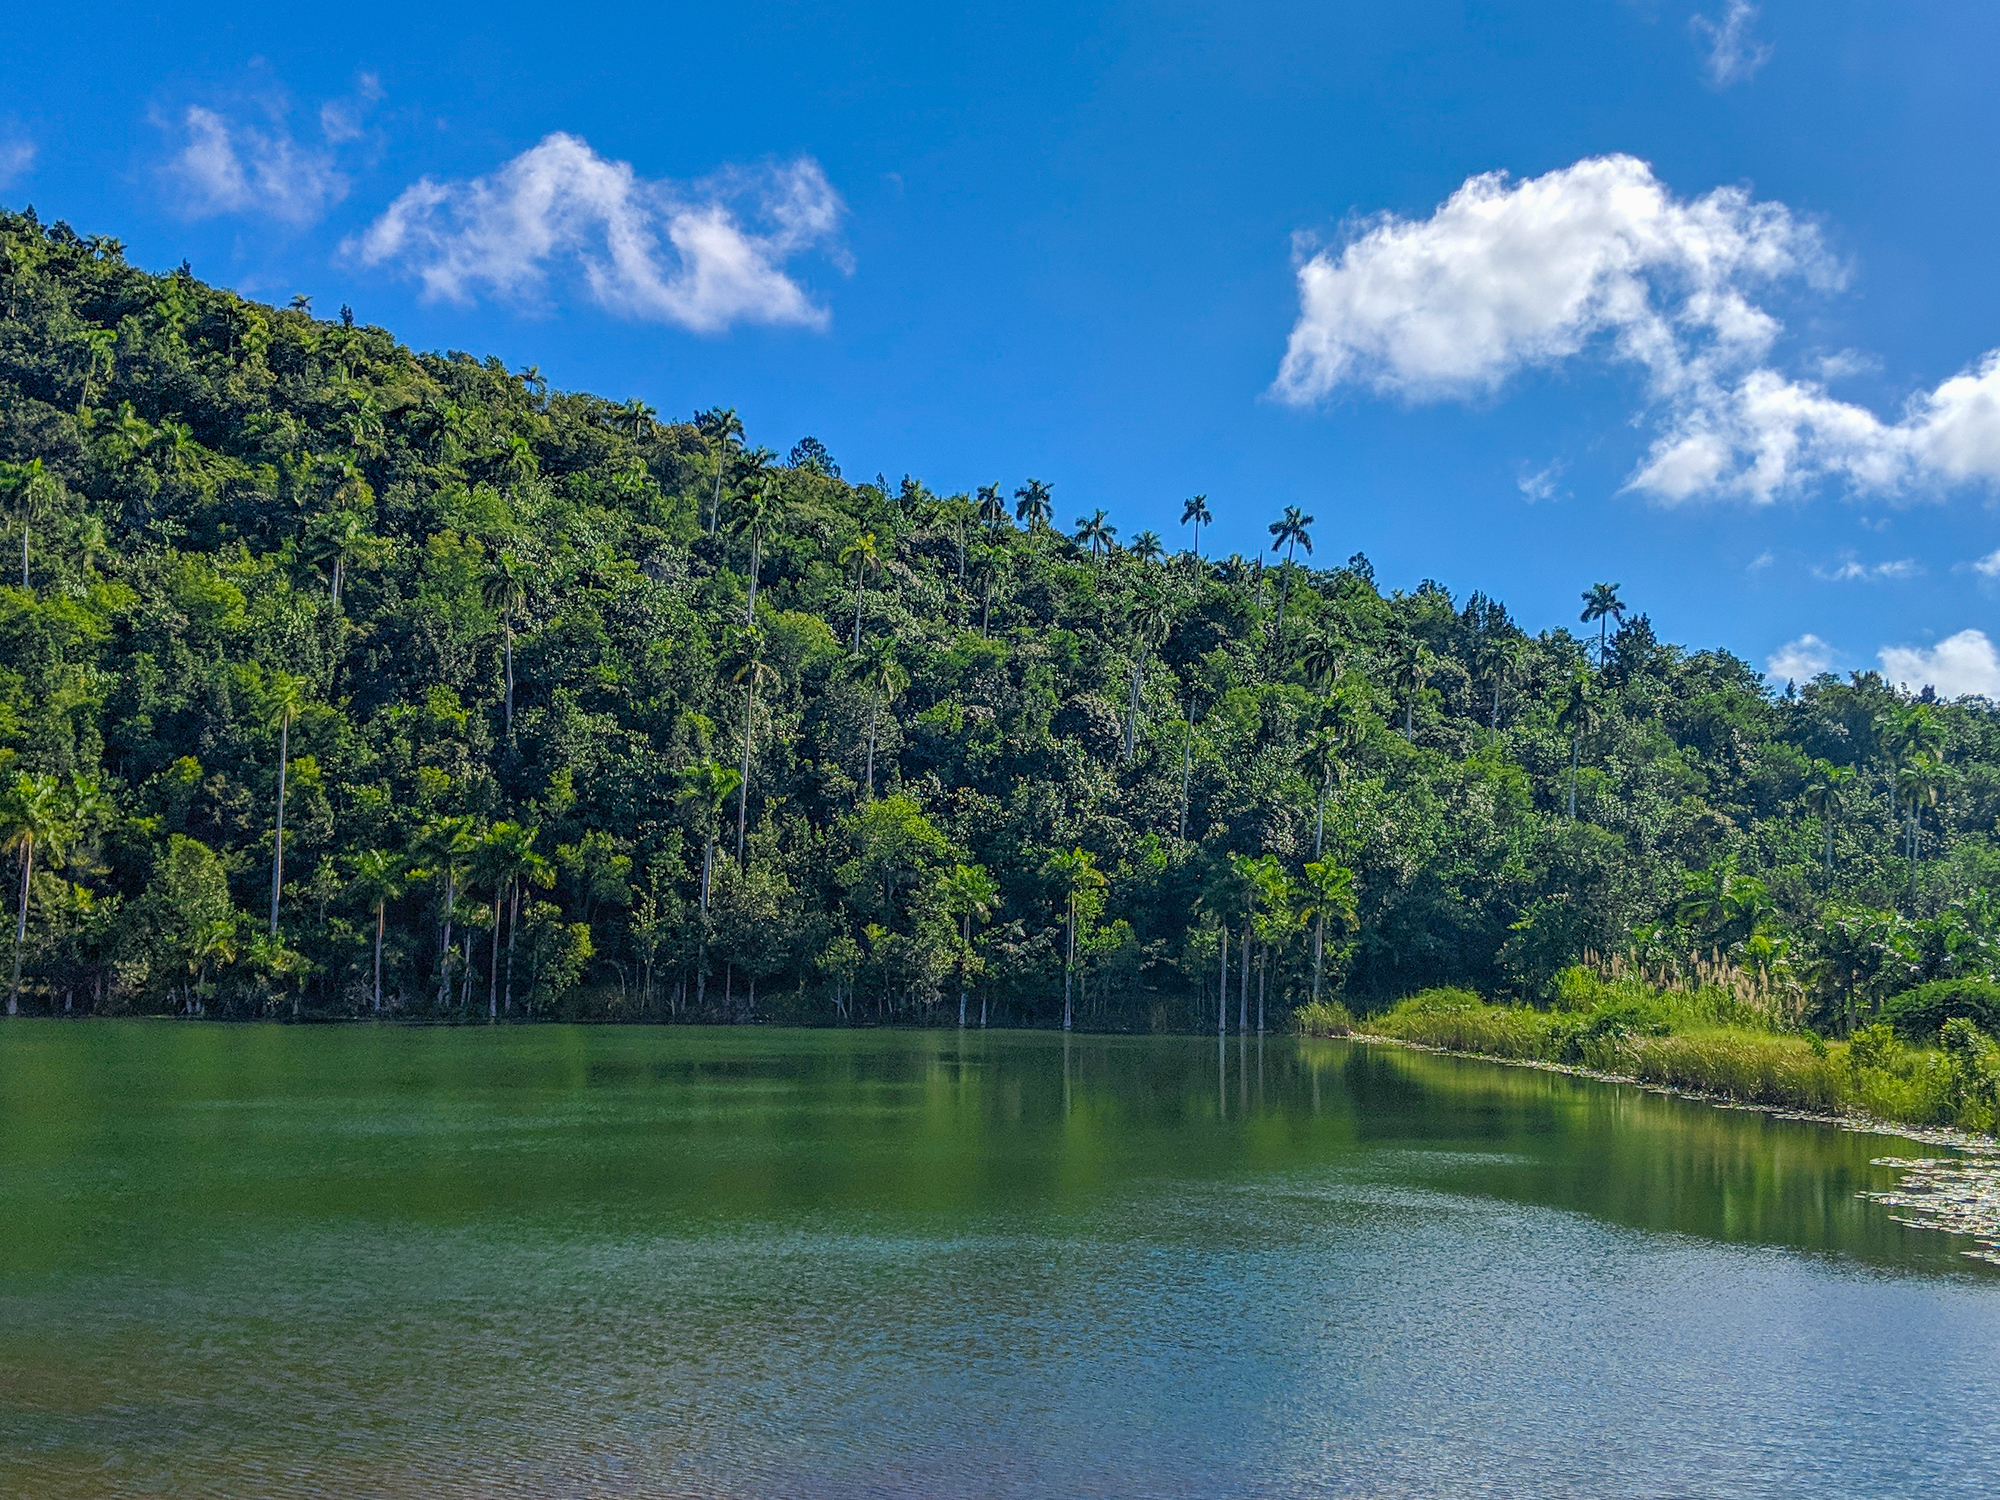 Lago San Juan in Las Terrazas Cuba is a small man made lake in the UNESCO reserve.